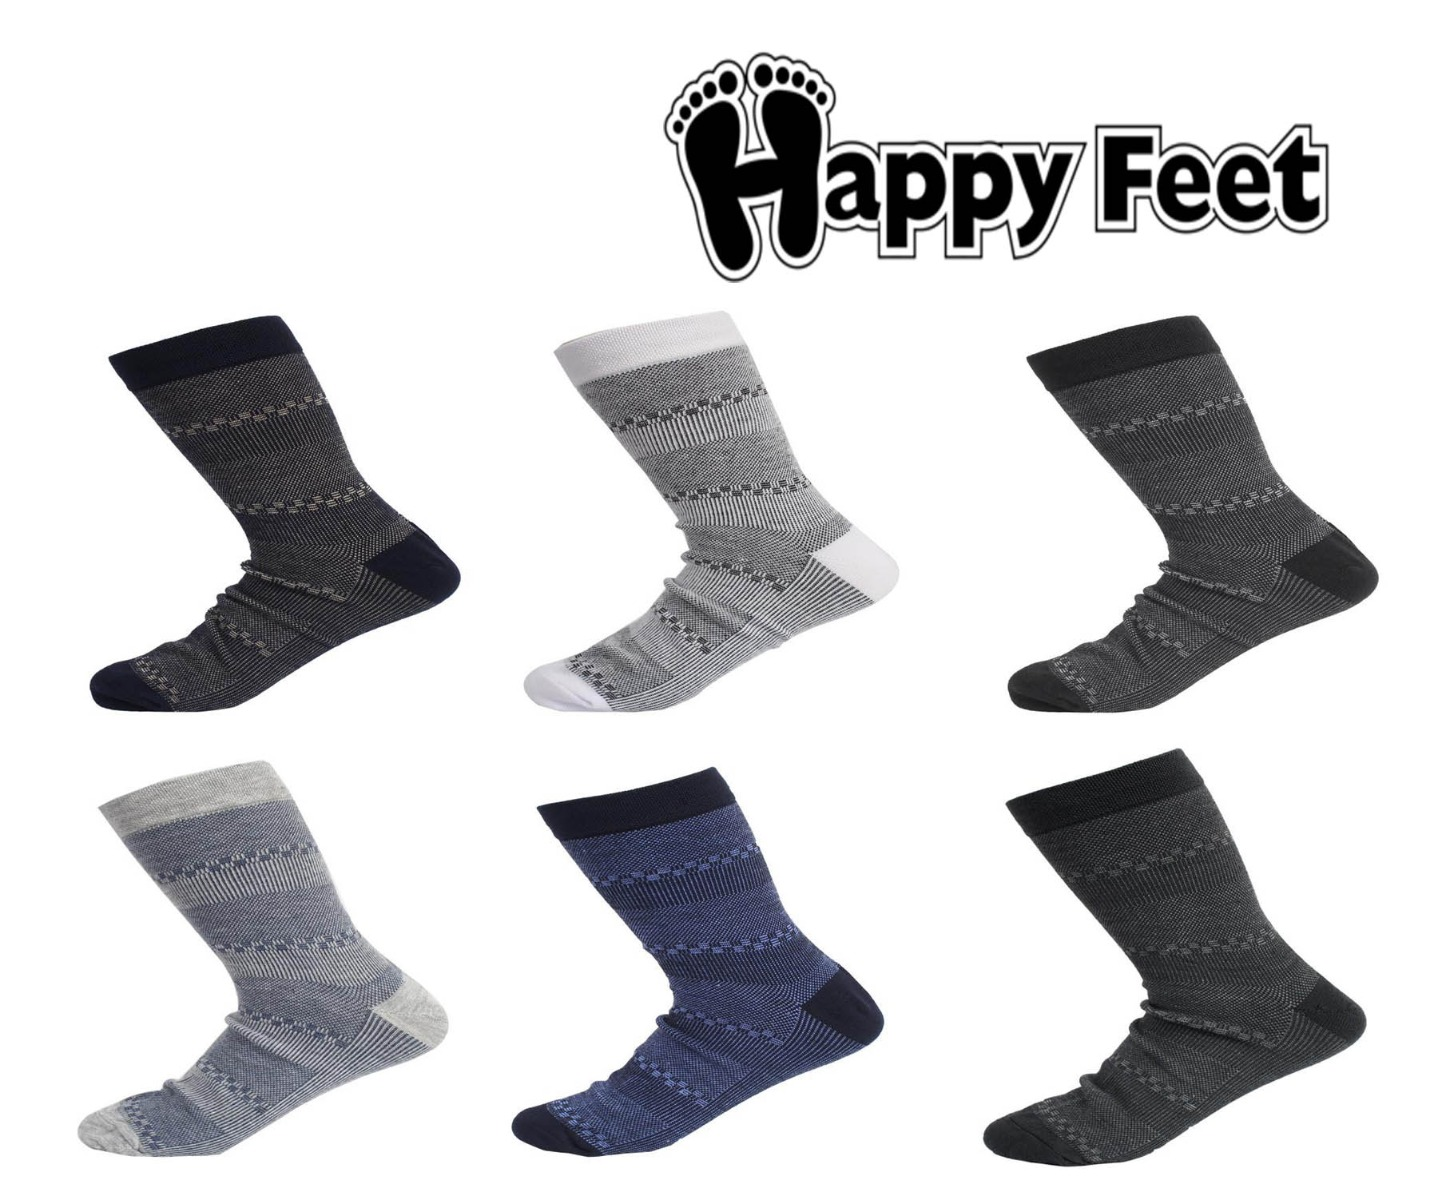 Happy Feet Pack of 6 Pairs of Pure Cotton Antibacterial Socks for Men (1035)